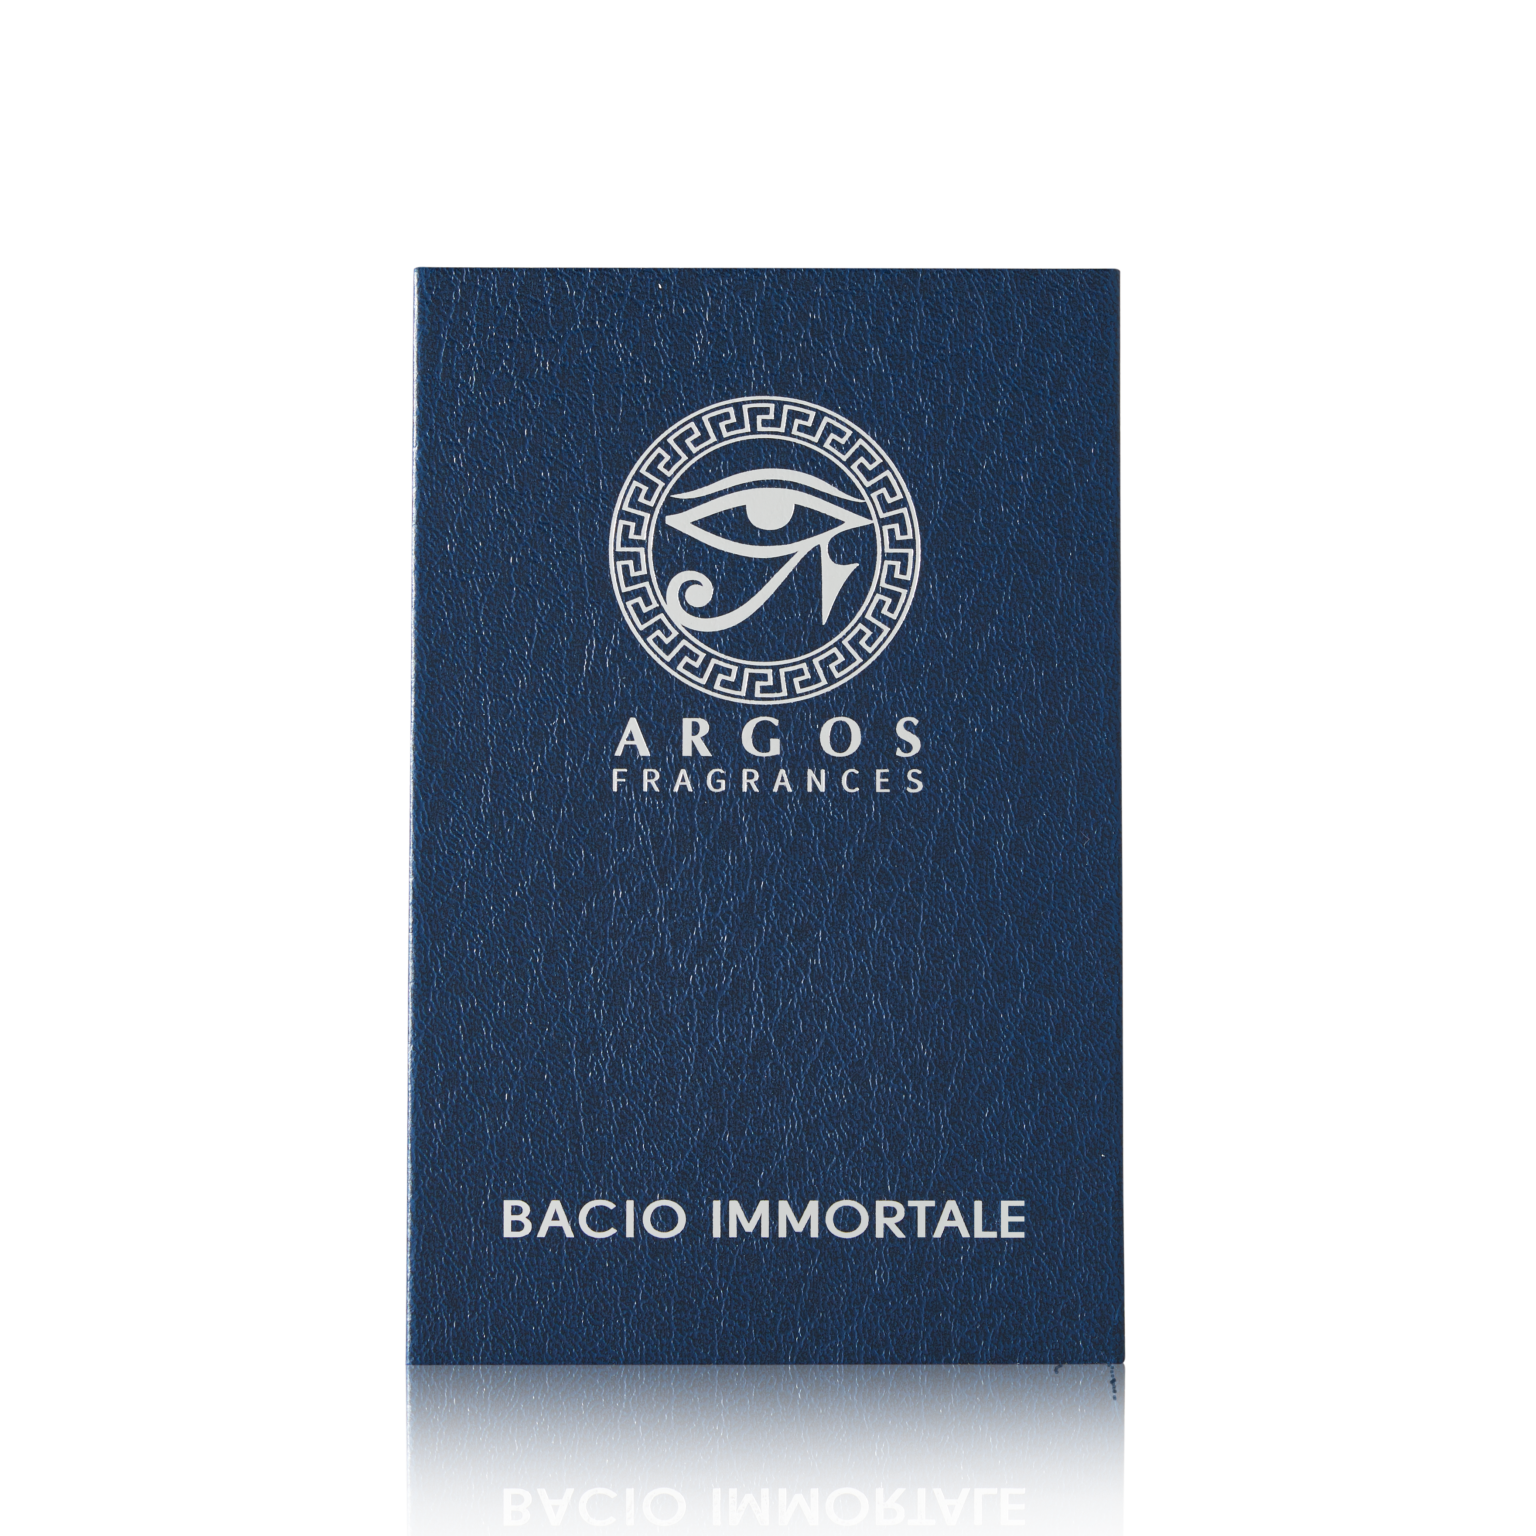 Argos Fragrances BACIO IMMORTALE Inner box front